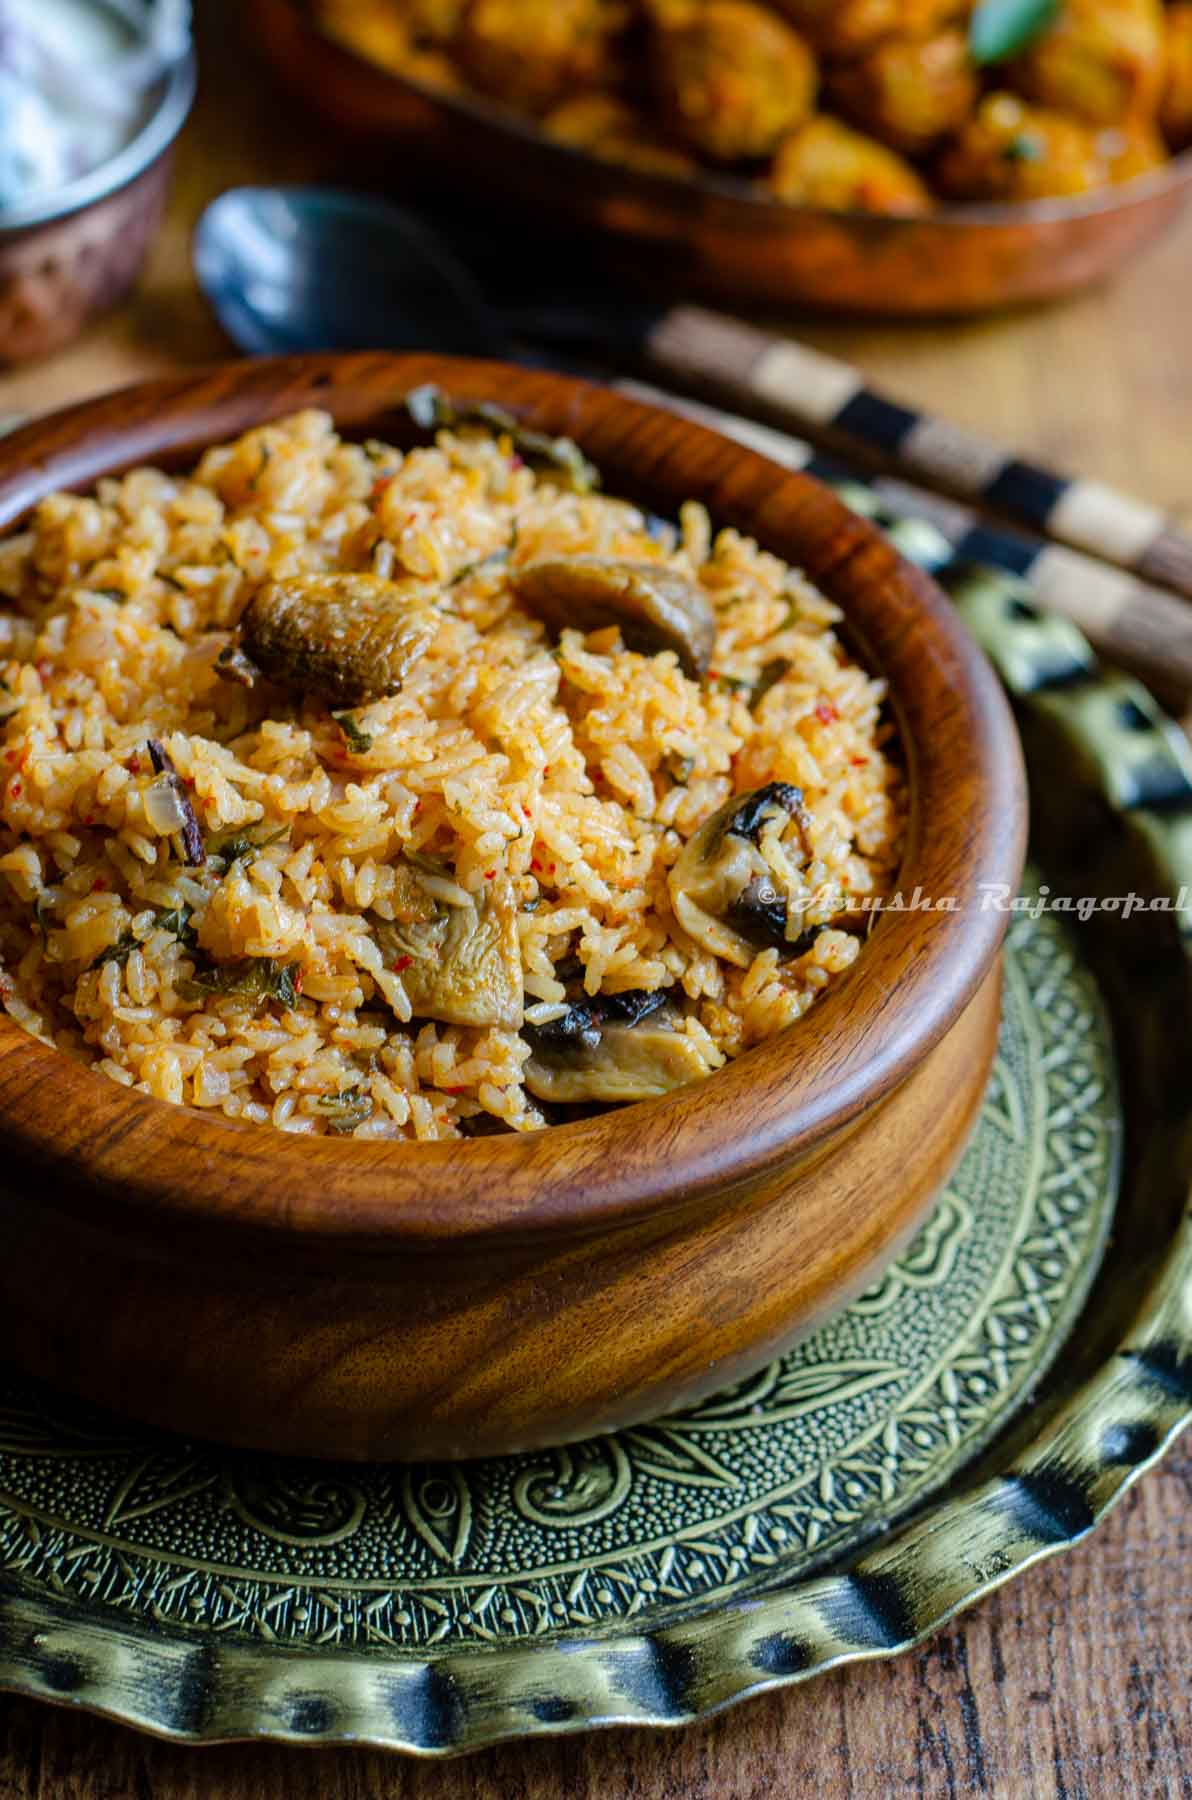 instant pot seeraga samba biryani served in a wooden handi bowl with cutlery by the side.